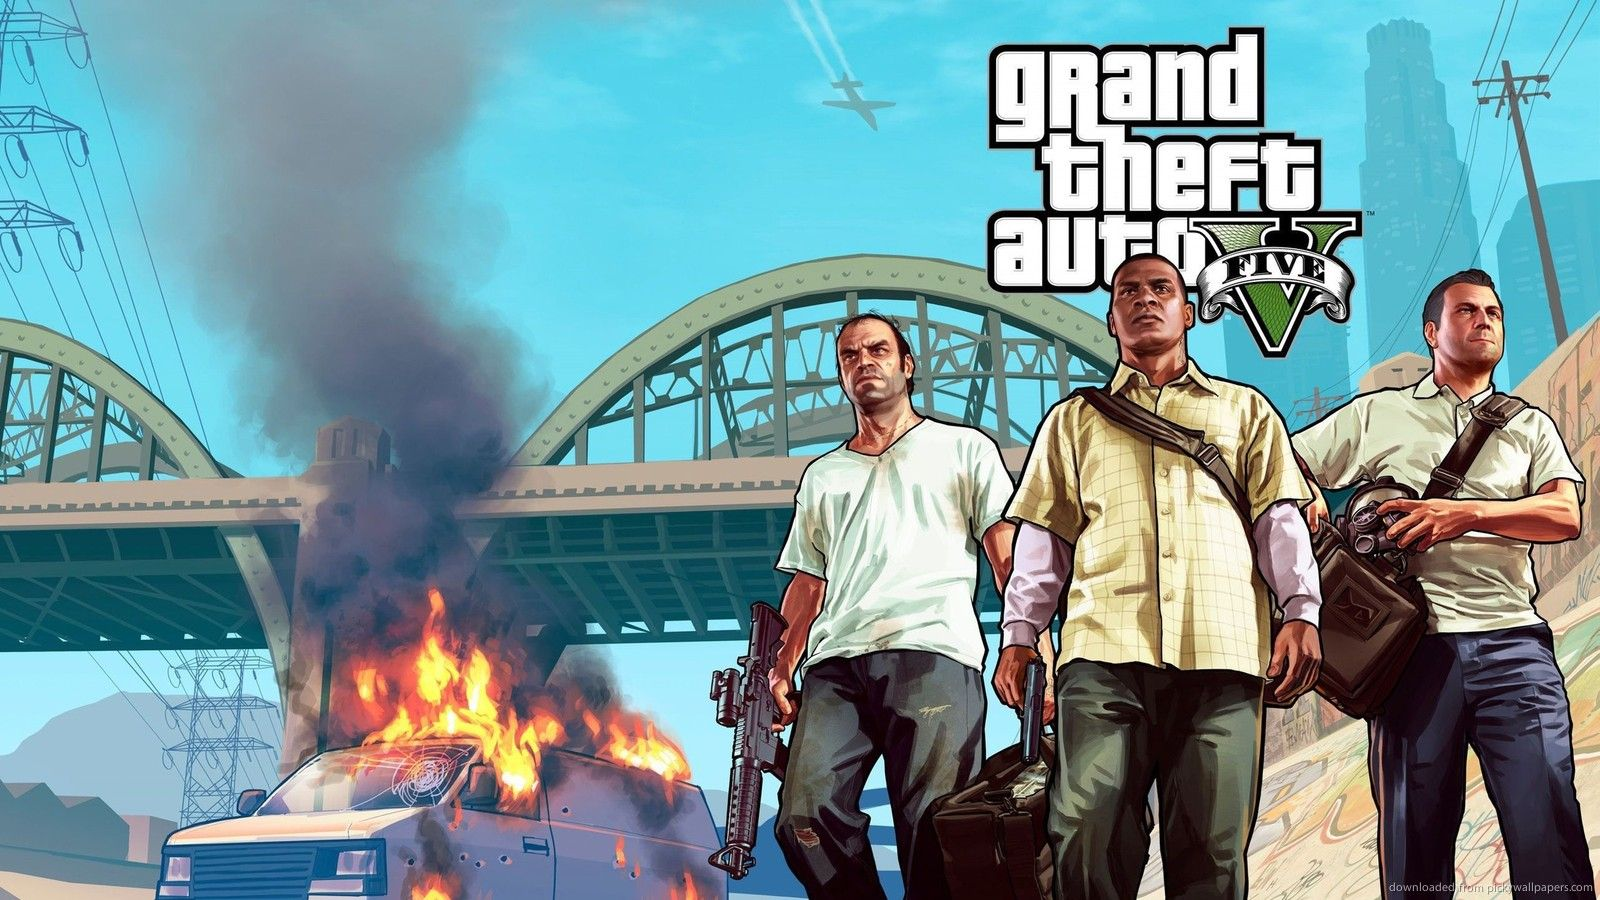 gta 5 wallpaper 1600x900 - wallpaper. | free wallpapers